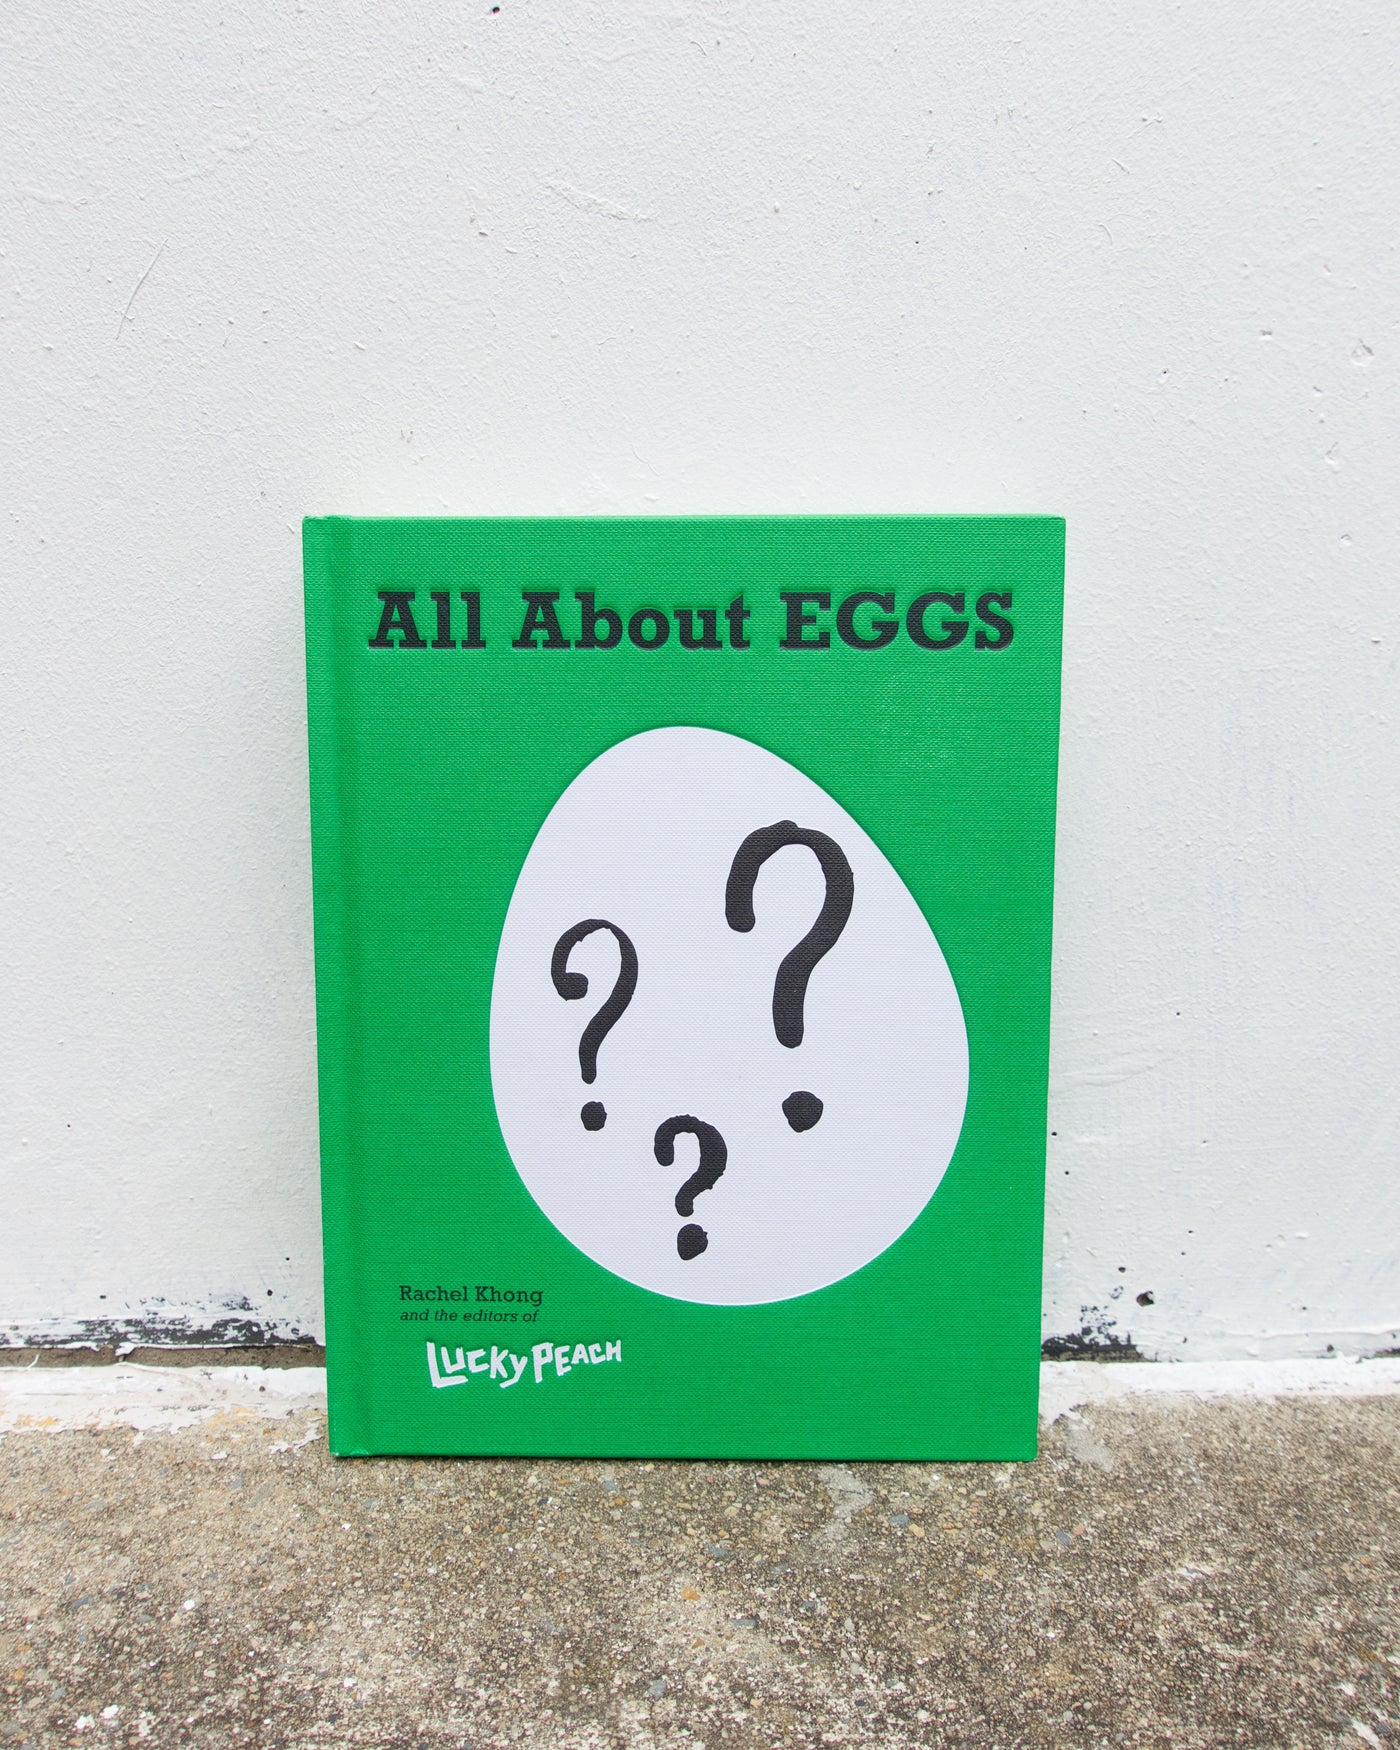 All About Eggs: Lucky Peach